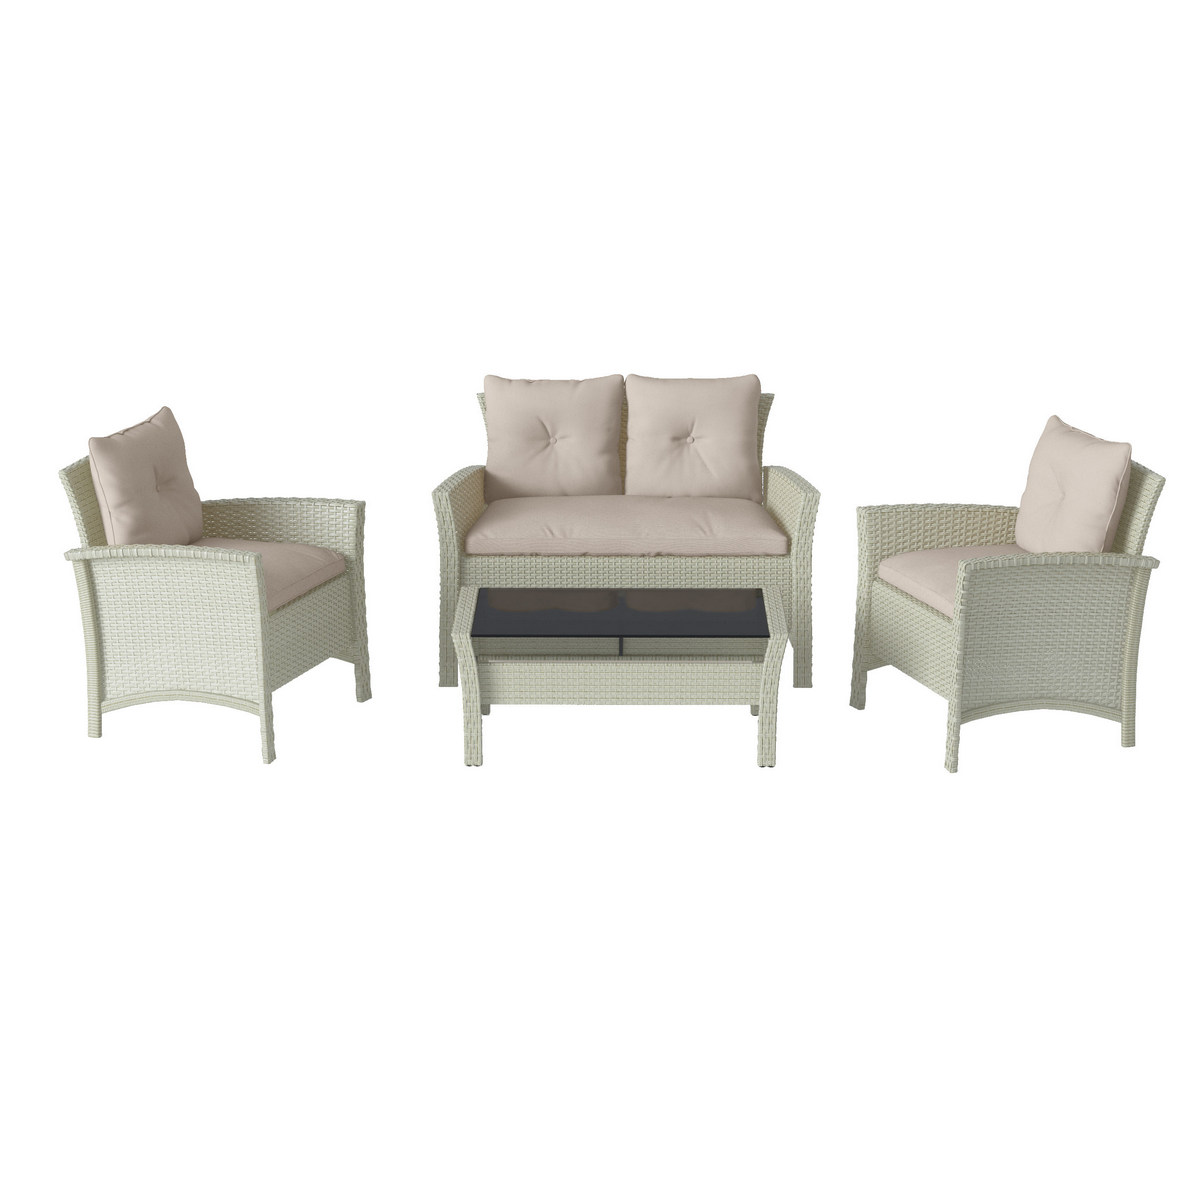 Corliving Distressed Grey Resin Rattan Wicker Patio Set Warm White Cushions